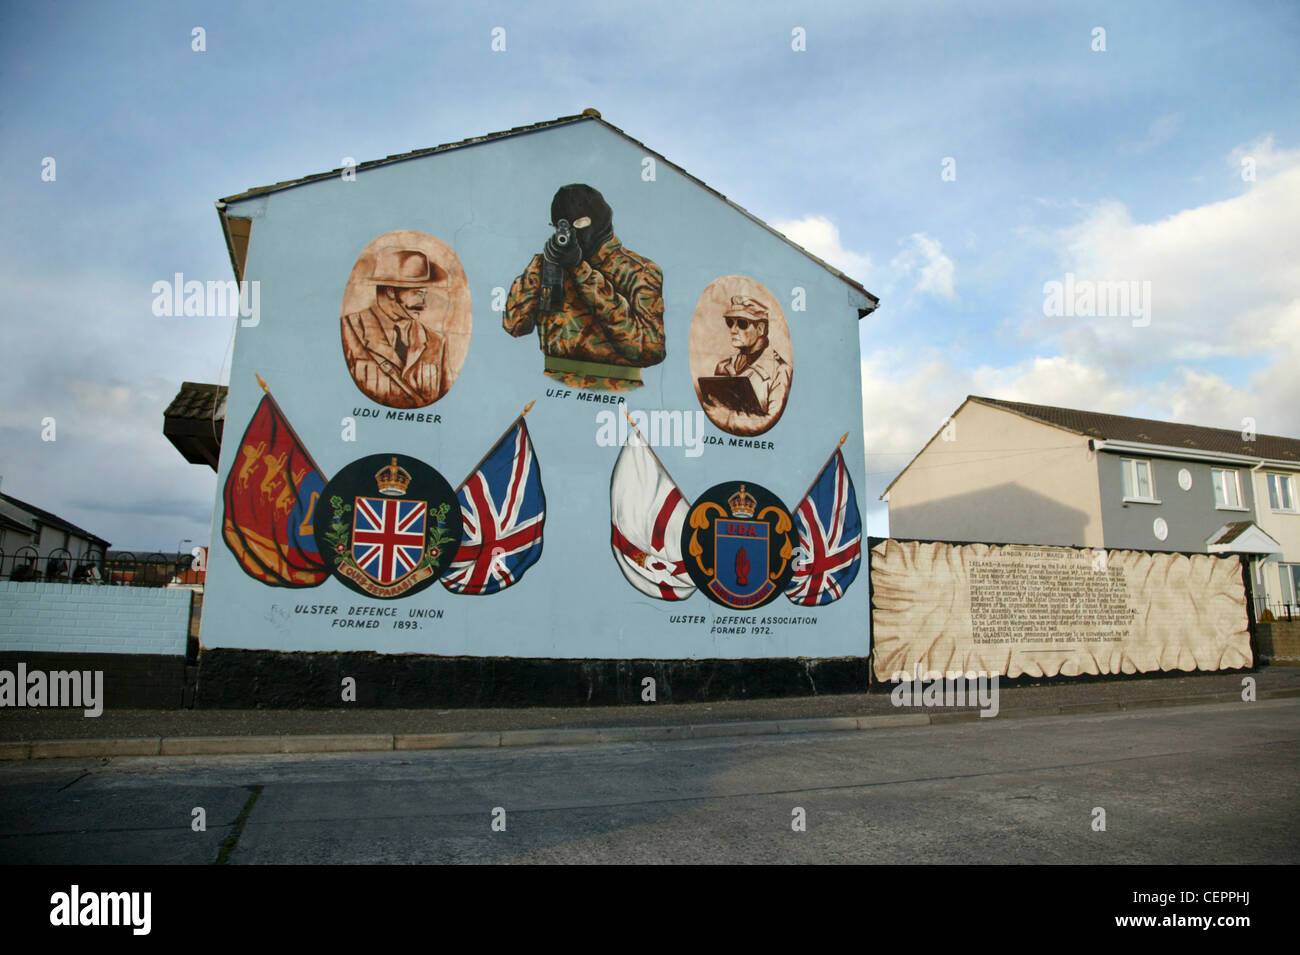 Political murals from the Ulster defence union in Boundary street. - Stock Image